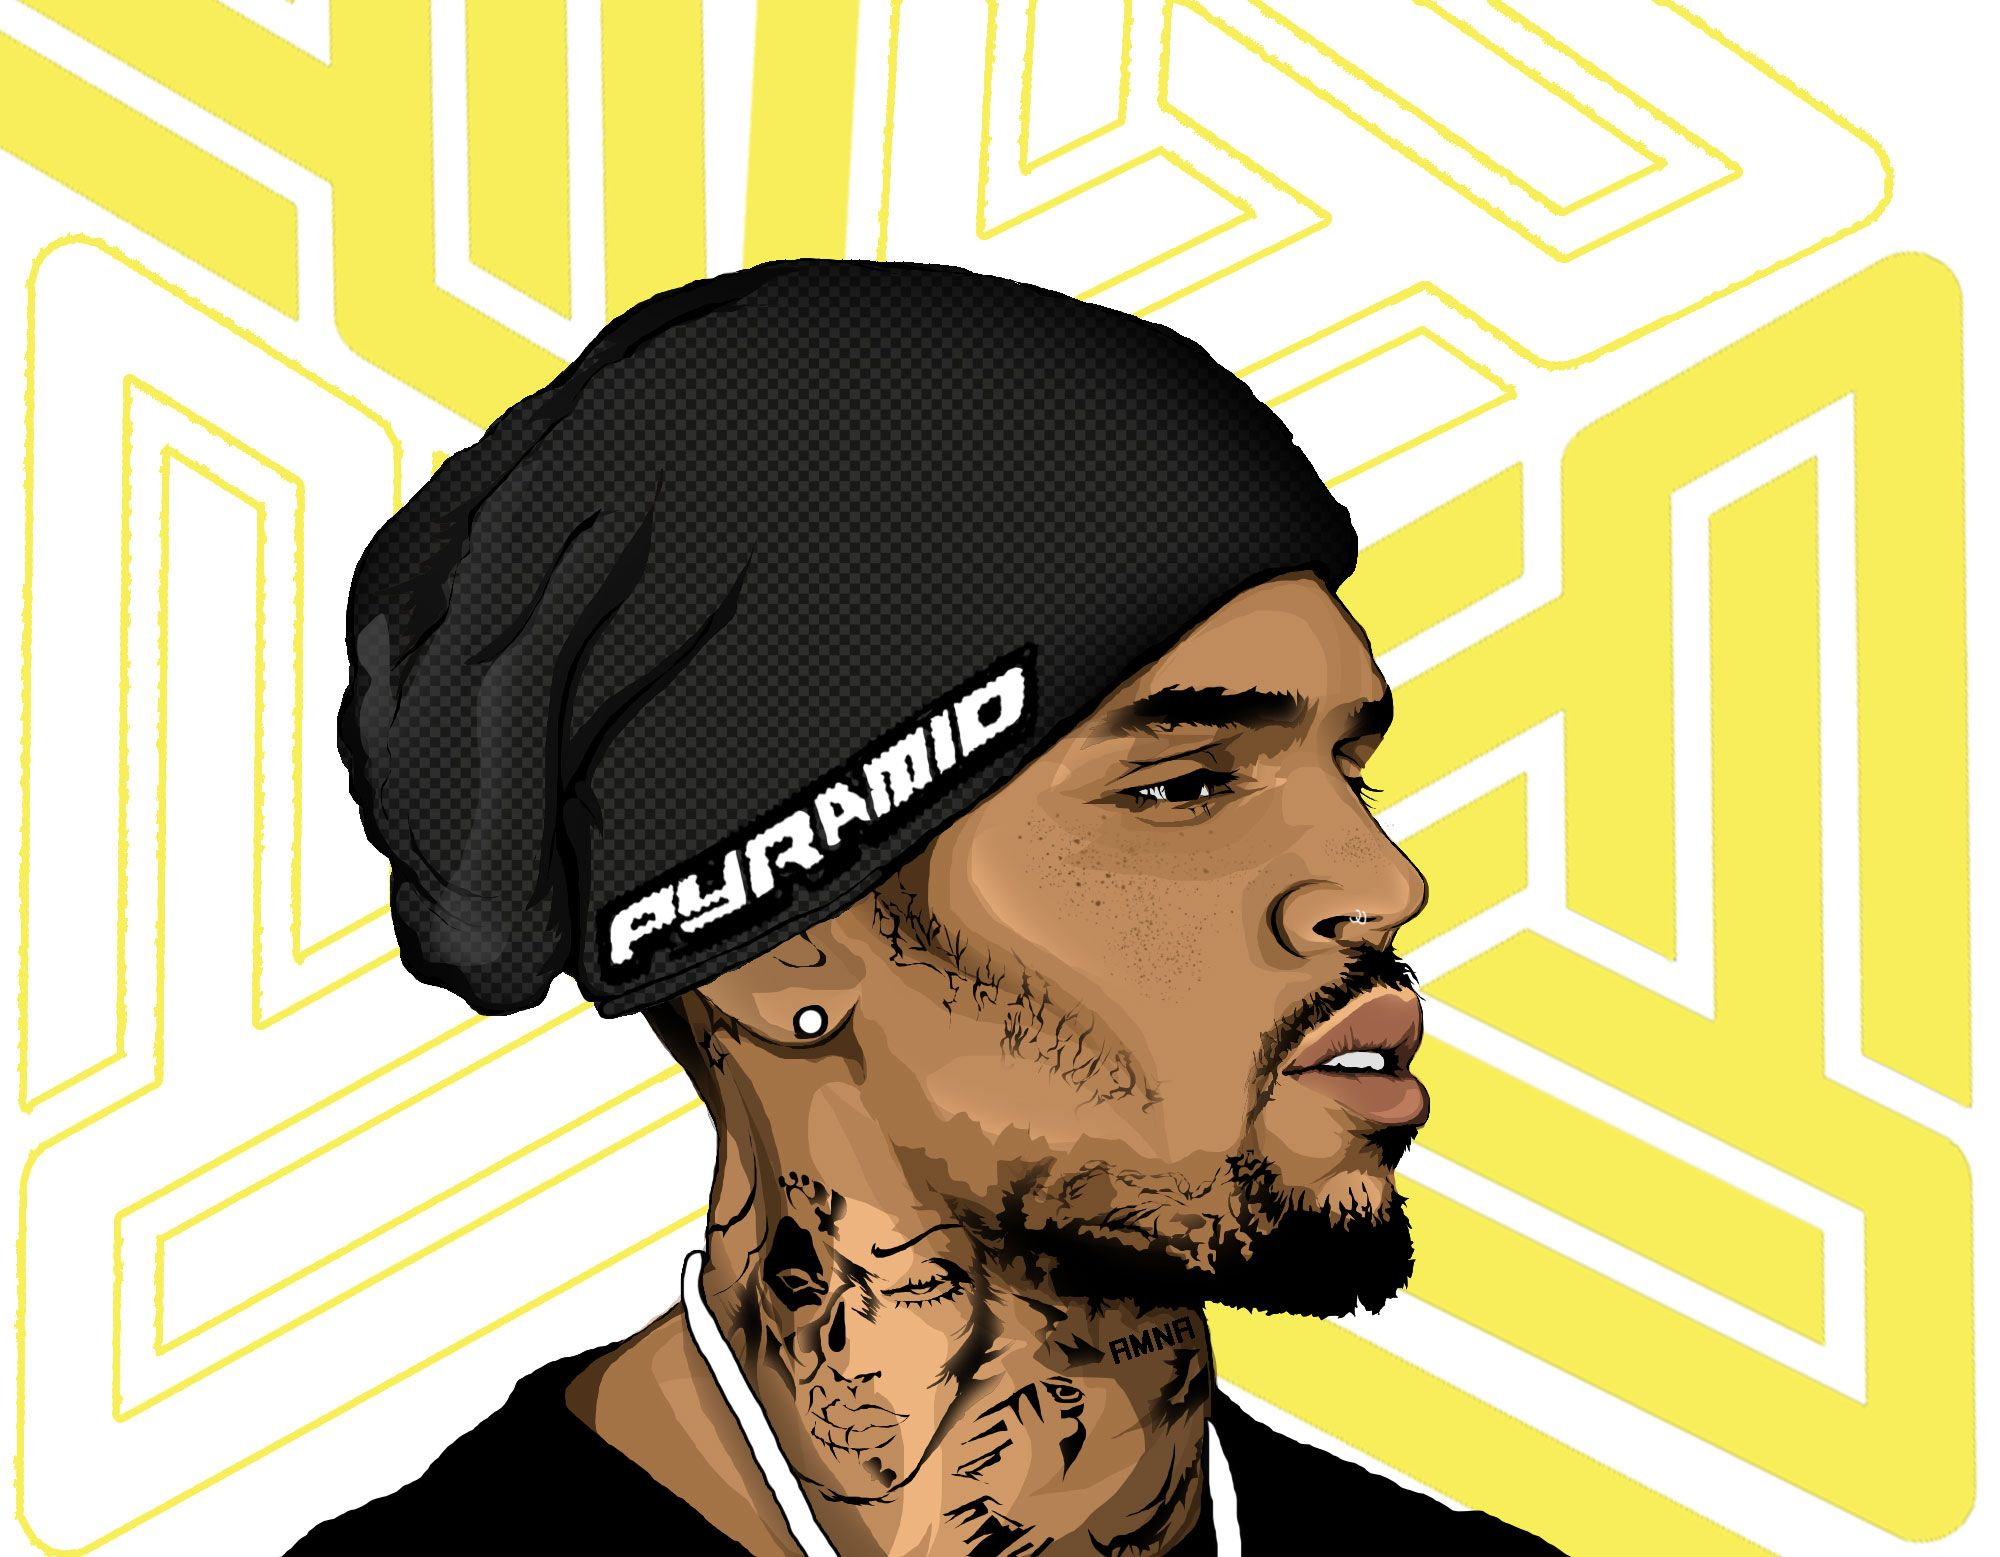 Chrisbrown Teambreezy Breezy Chris Brown Style Chris Brown